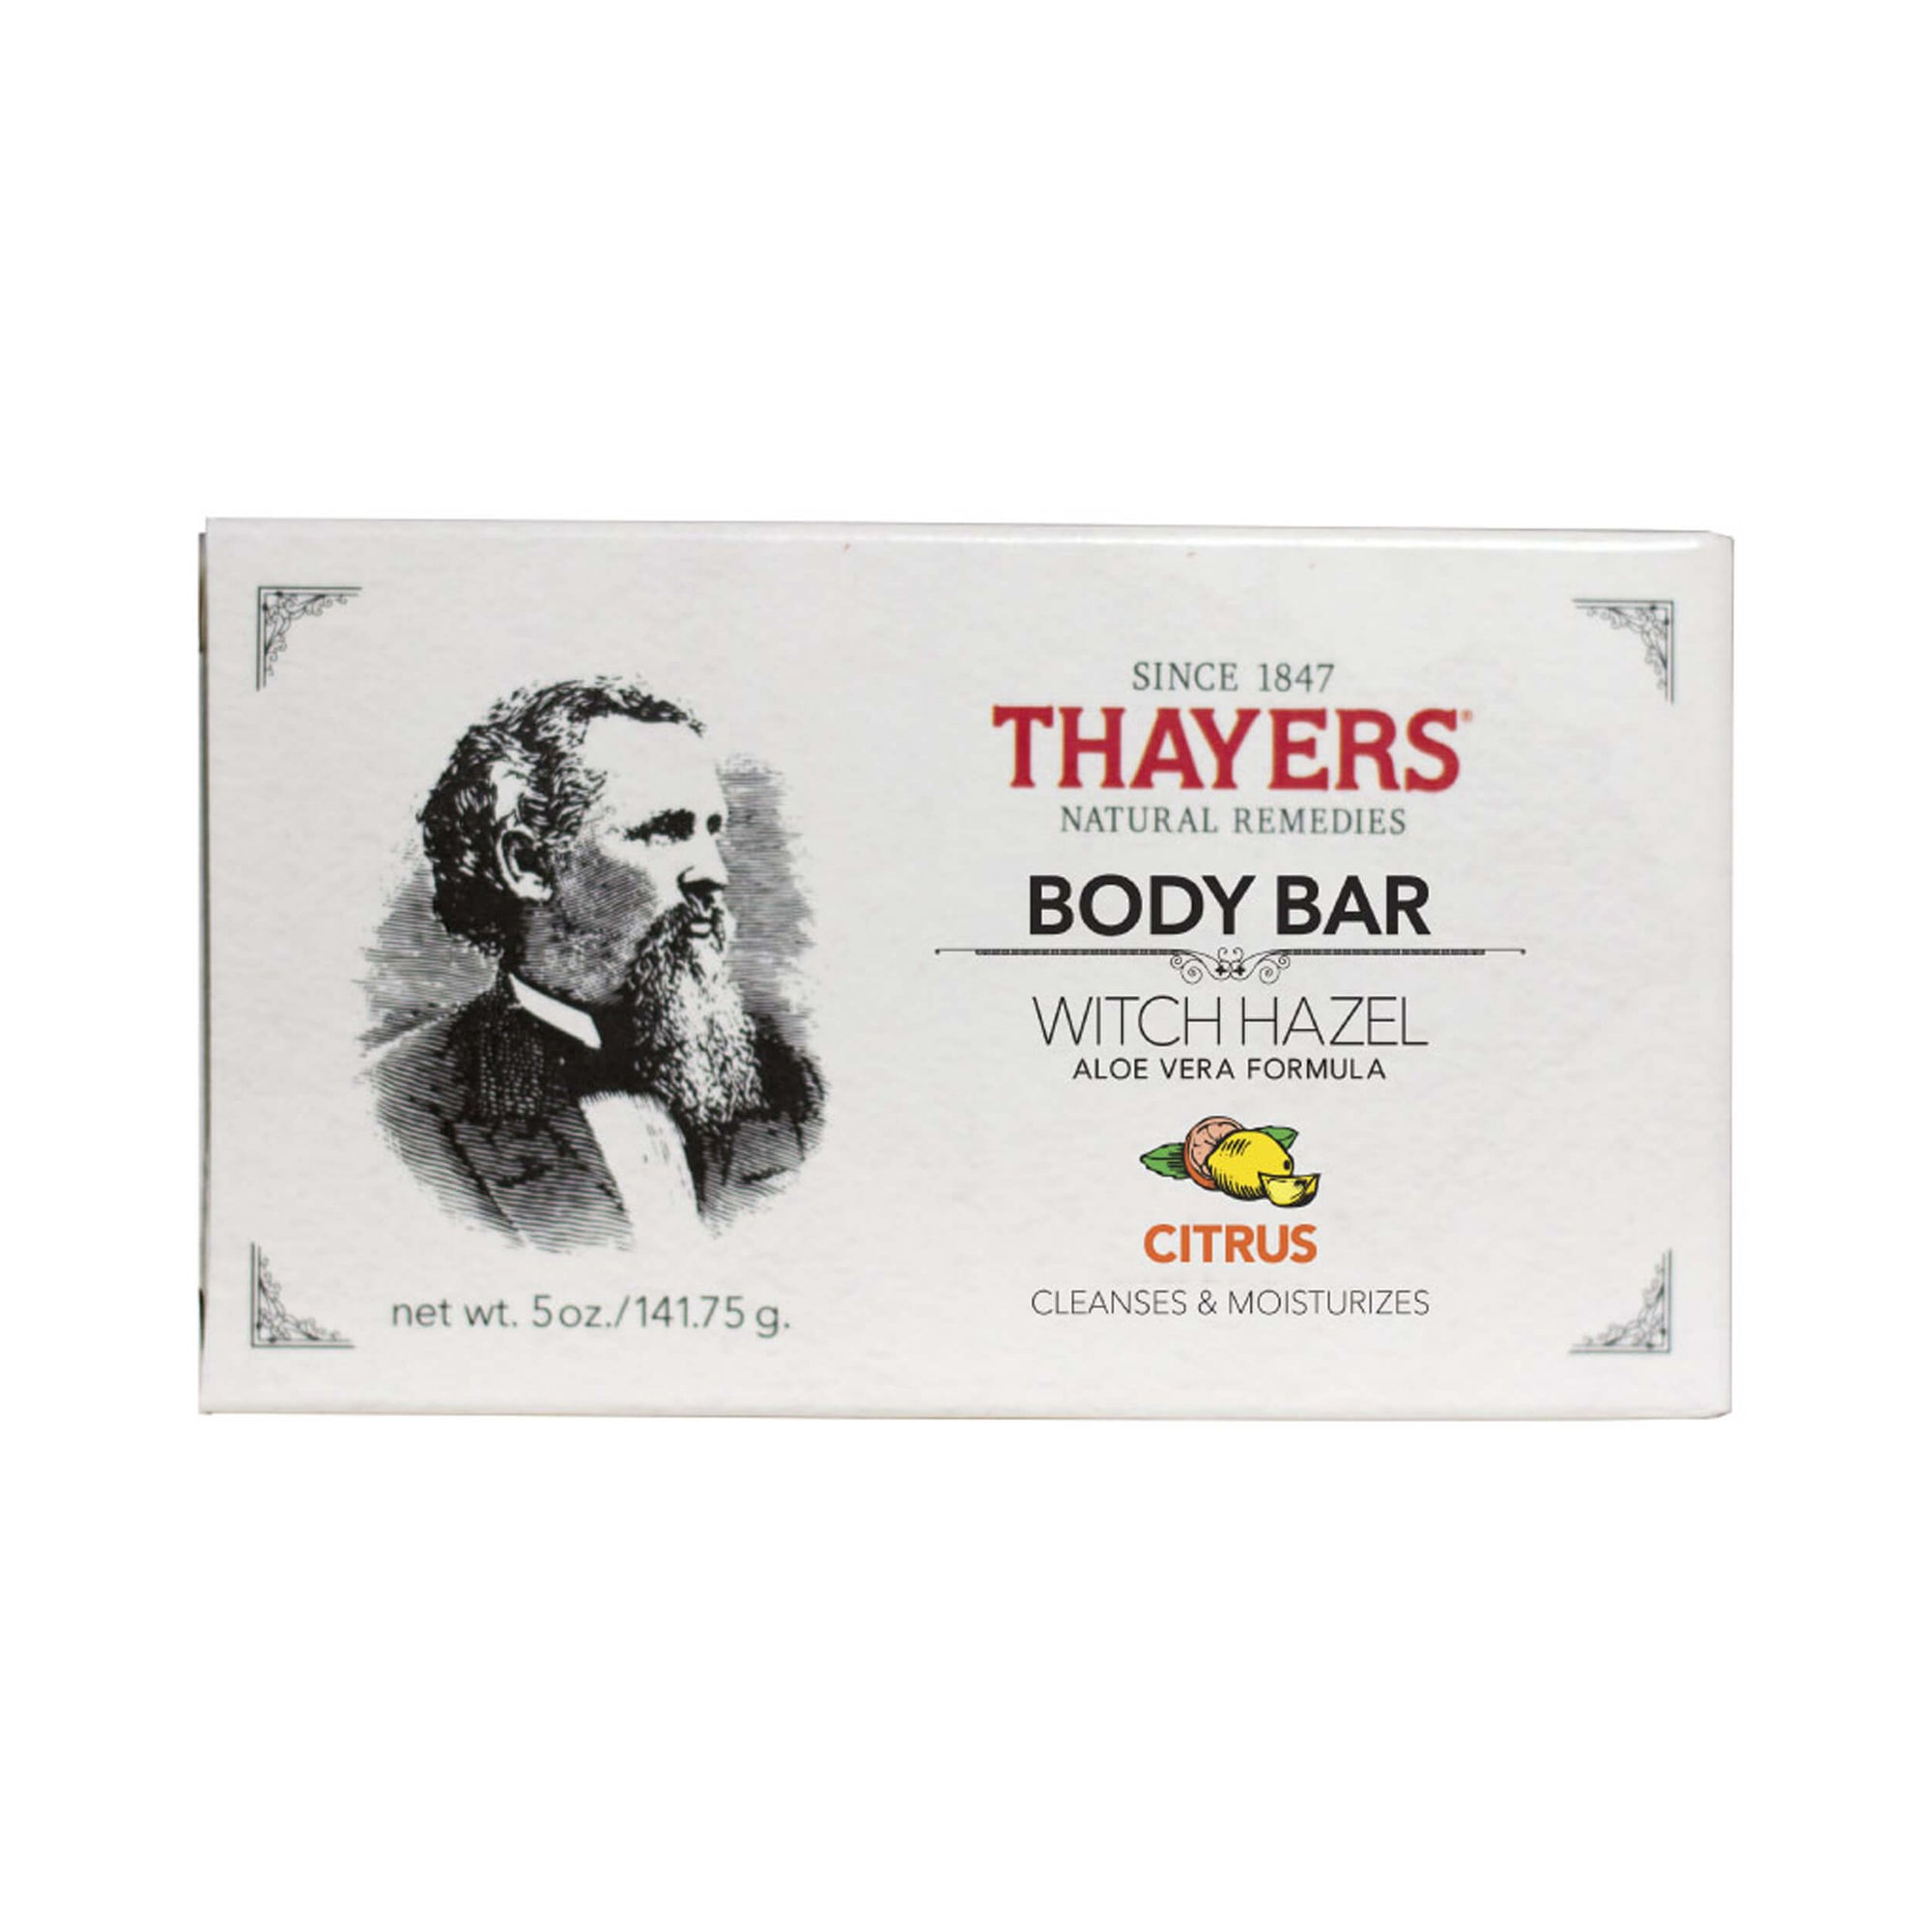 Thayers Witch Hazel Body Bar Citrus